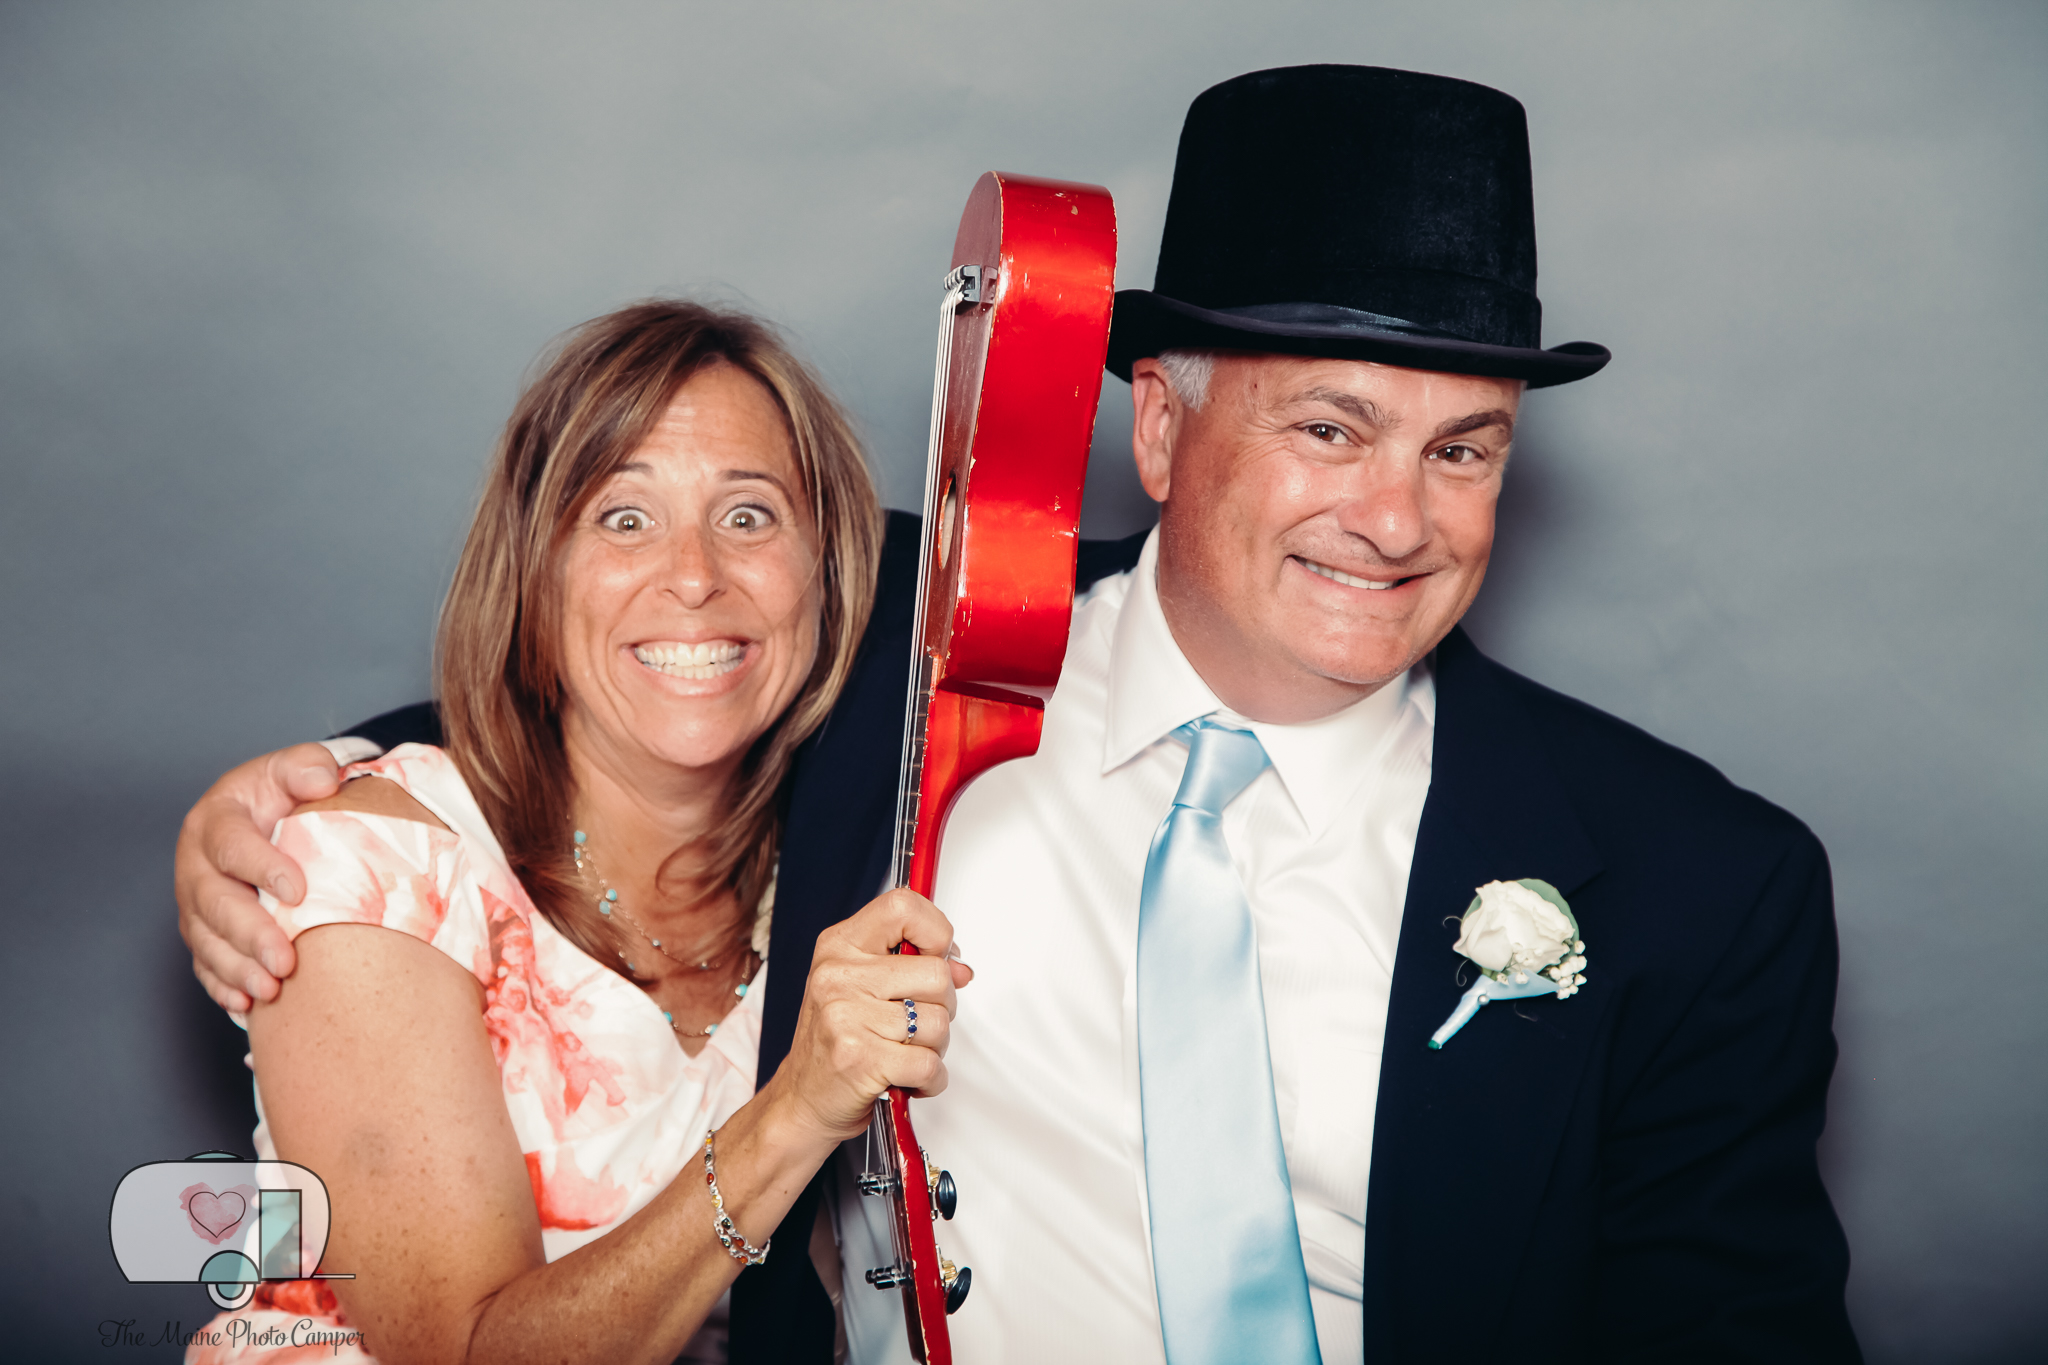 THE MAINE PHOTO CAMPER, MAINE PHOTO BOOTH RENTAL, MAINE TINKER PHOTOGRAPHY, JOSIAS FARM, CAPE NEDDICK WEDDING -2-15.jpg